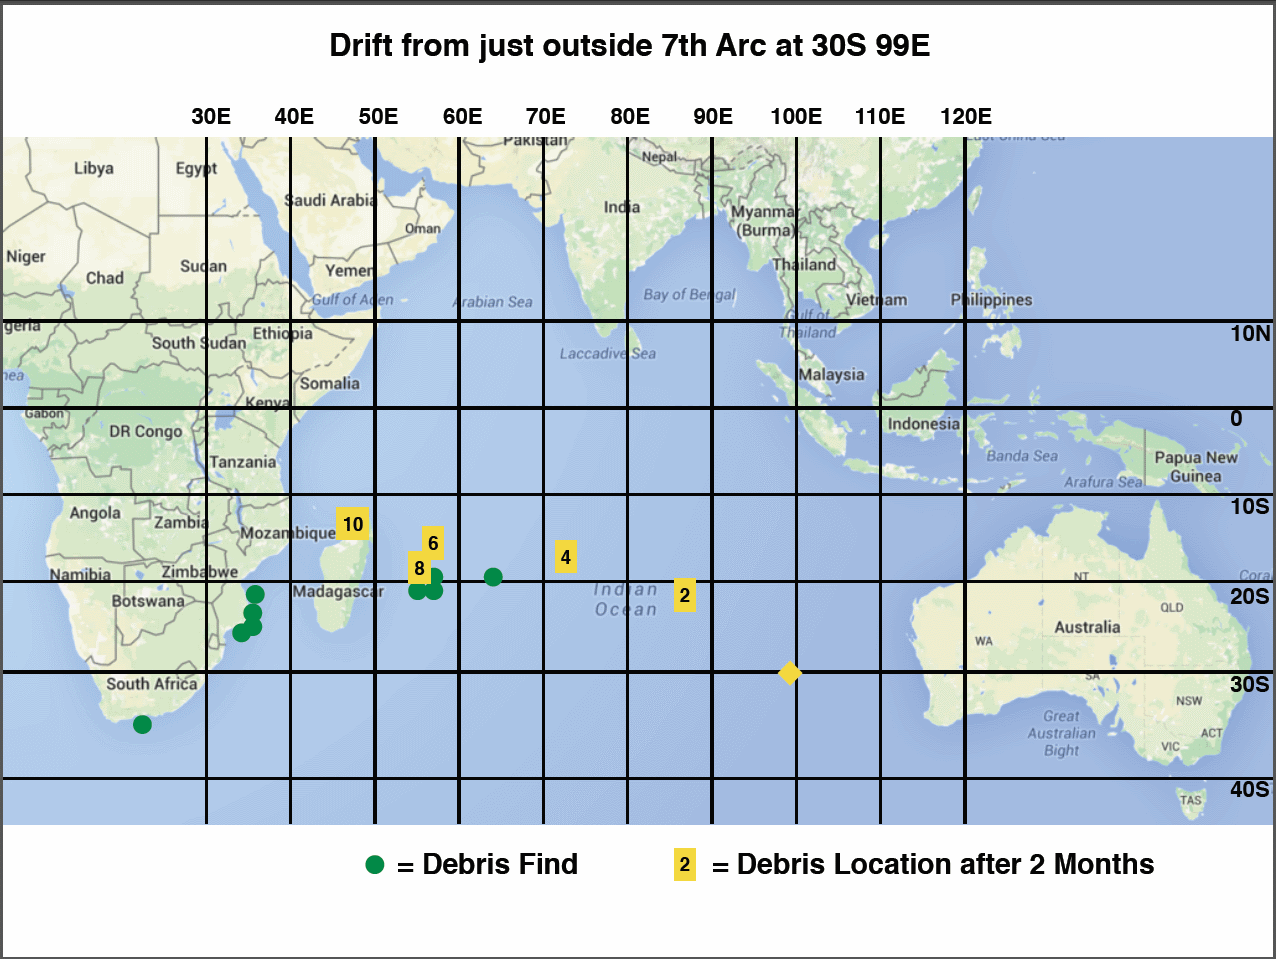 Indian Ocean Drift Map 30S 99E